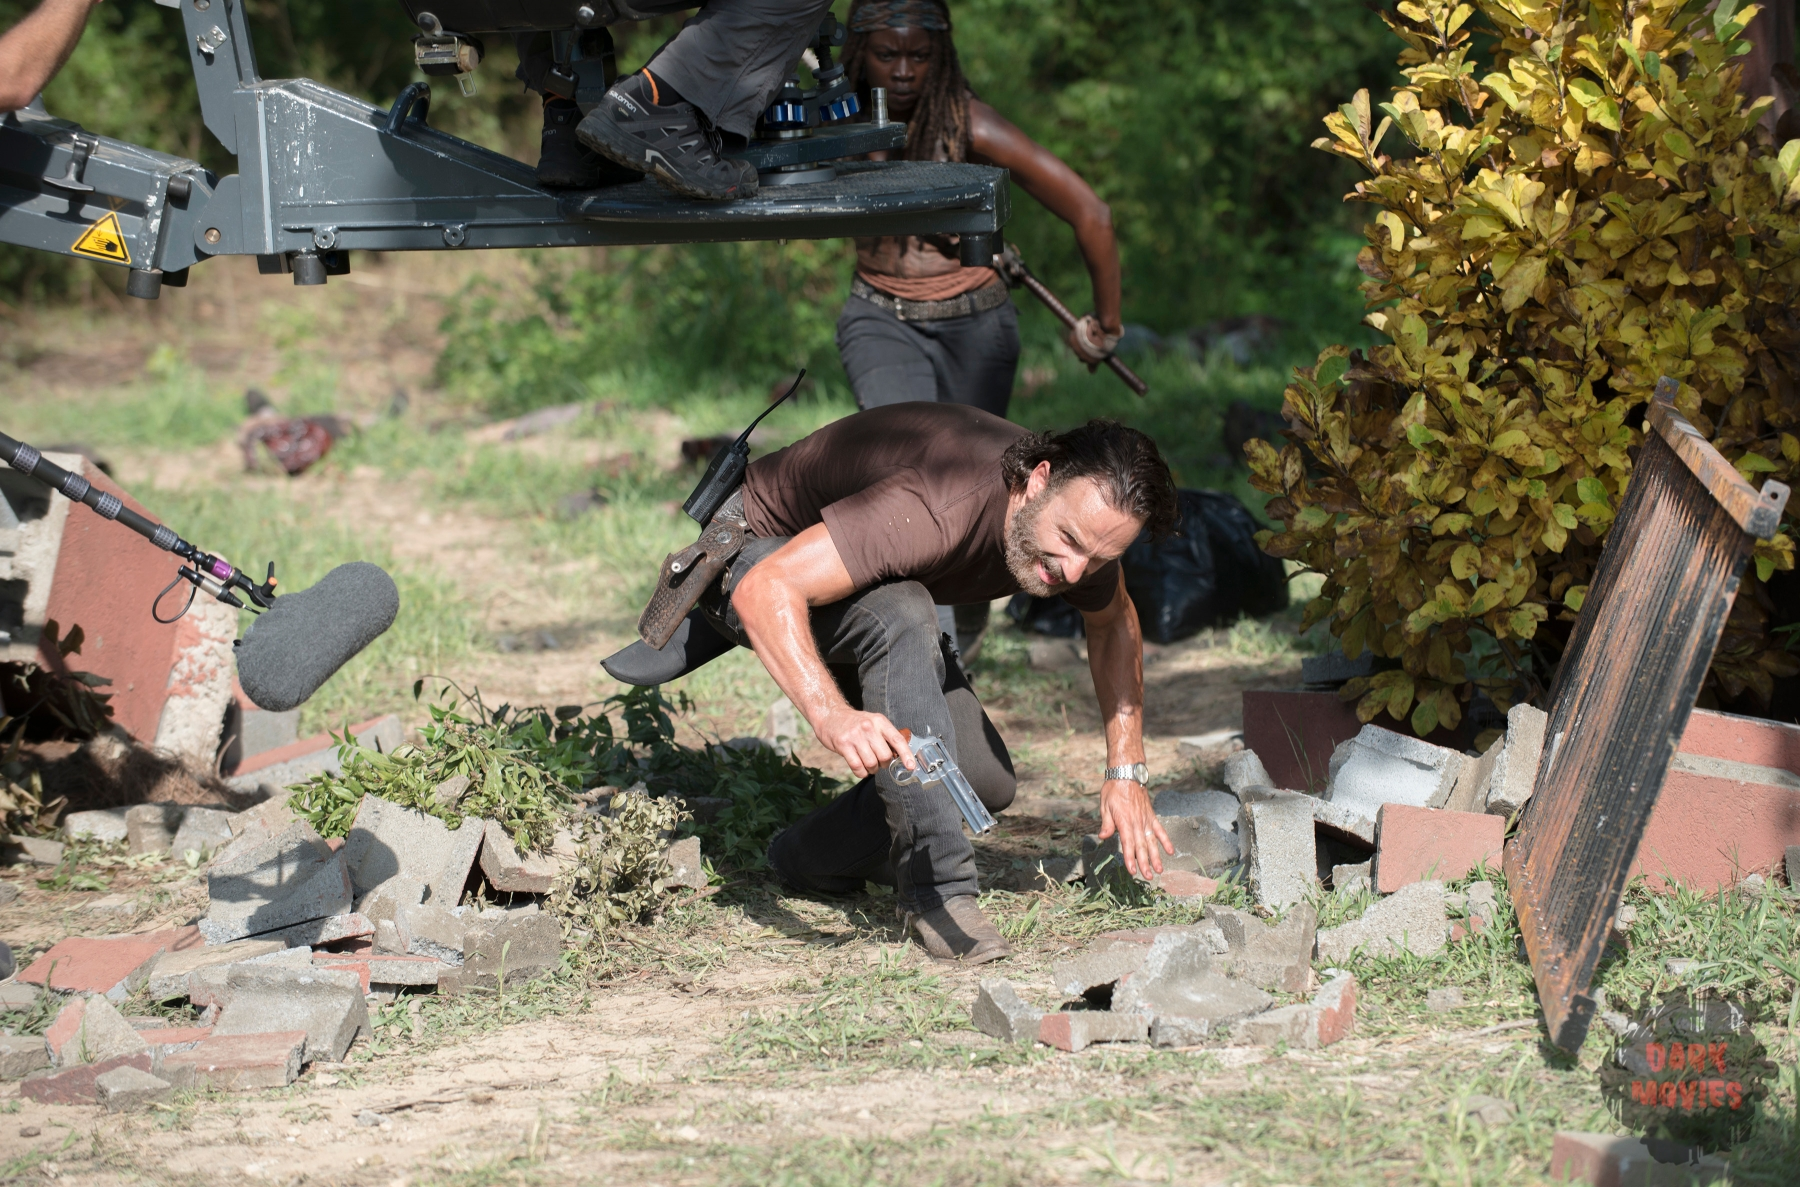 Andrew Lincoln and Danai Gurira - The Walking Dead _ Season 5, Episode 9 _ BTS - Photo Credit: Gene Page/AMC